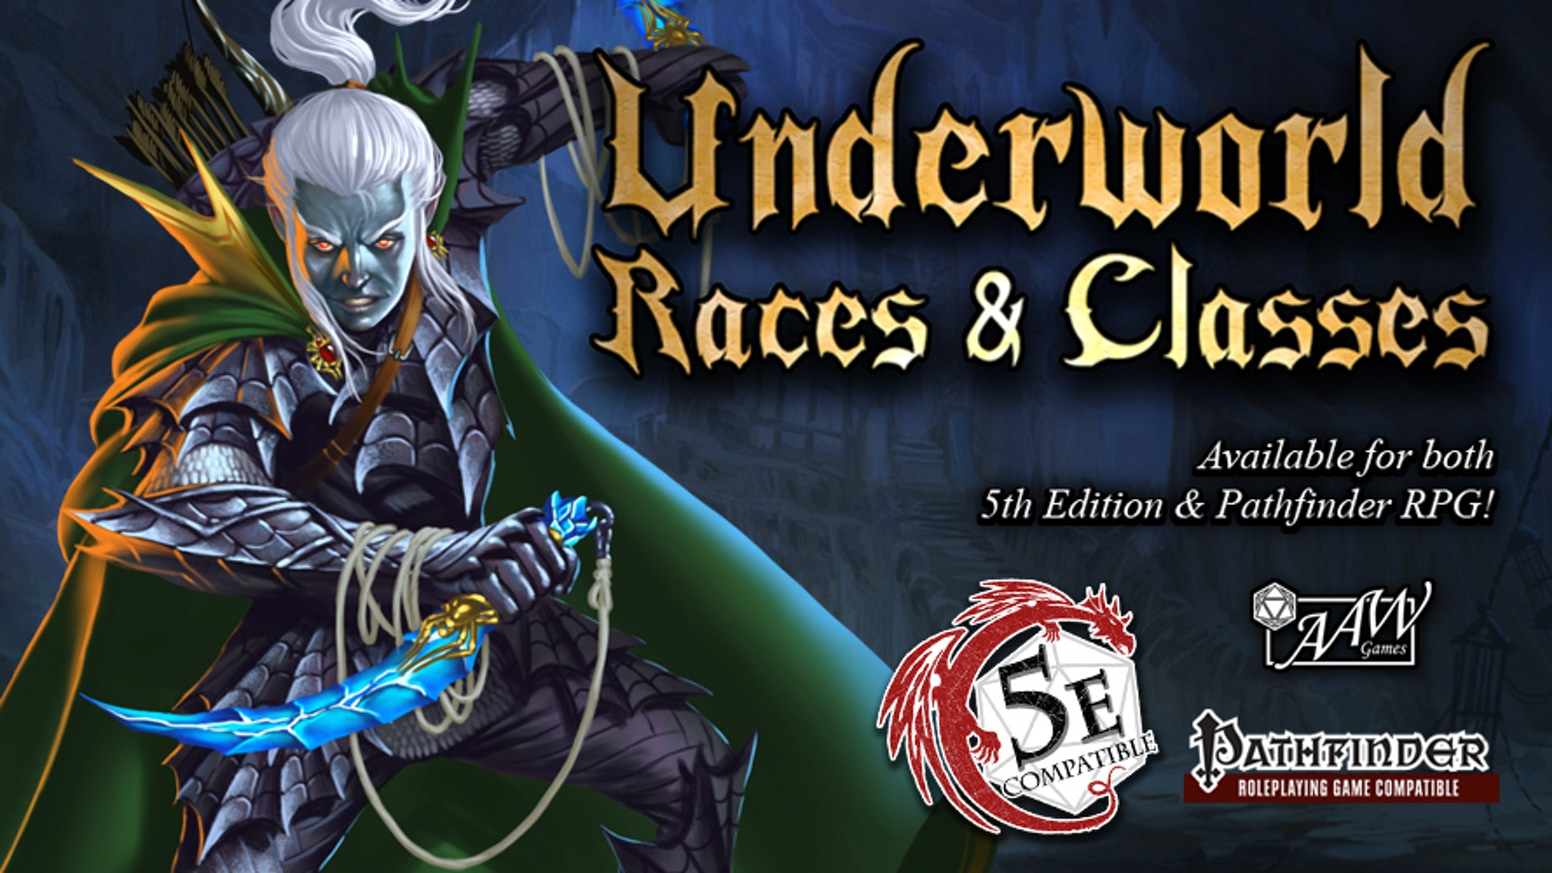 Underworld Races & Classes for 5th Edition & Pathfinder RPG